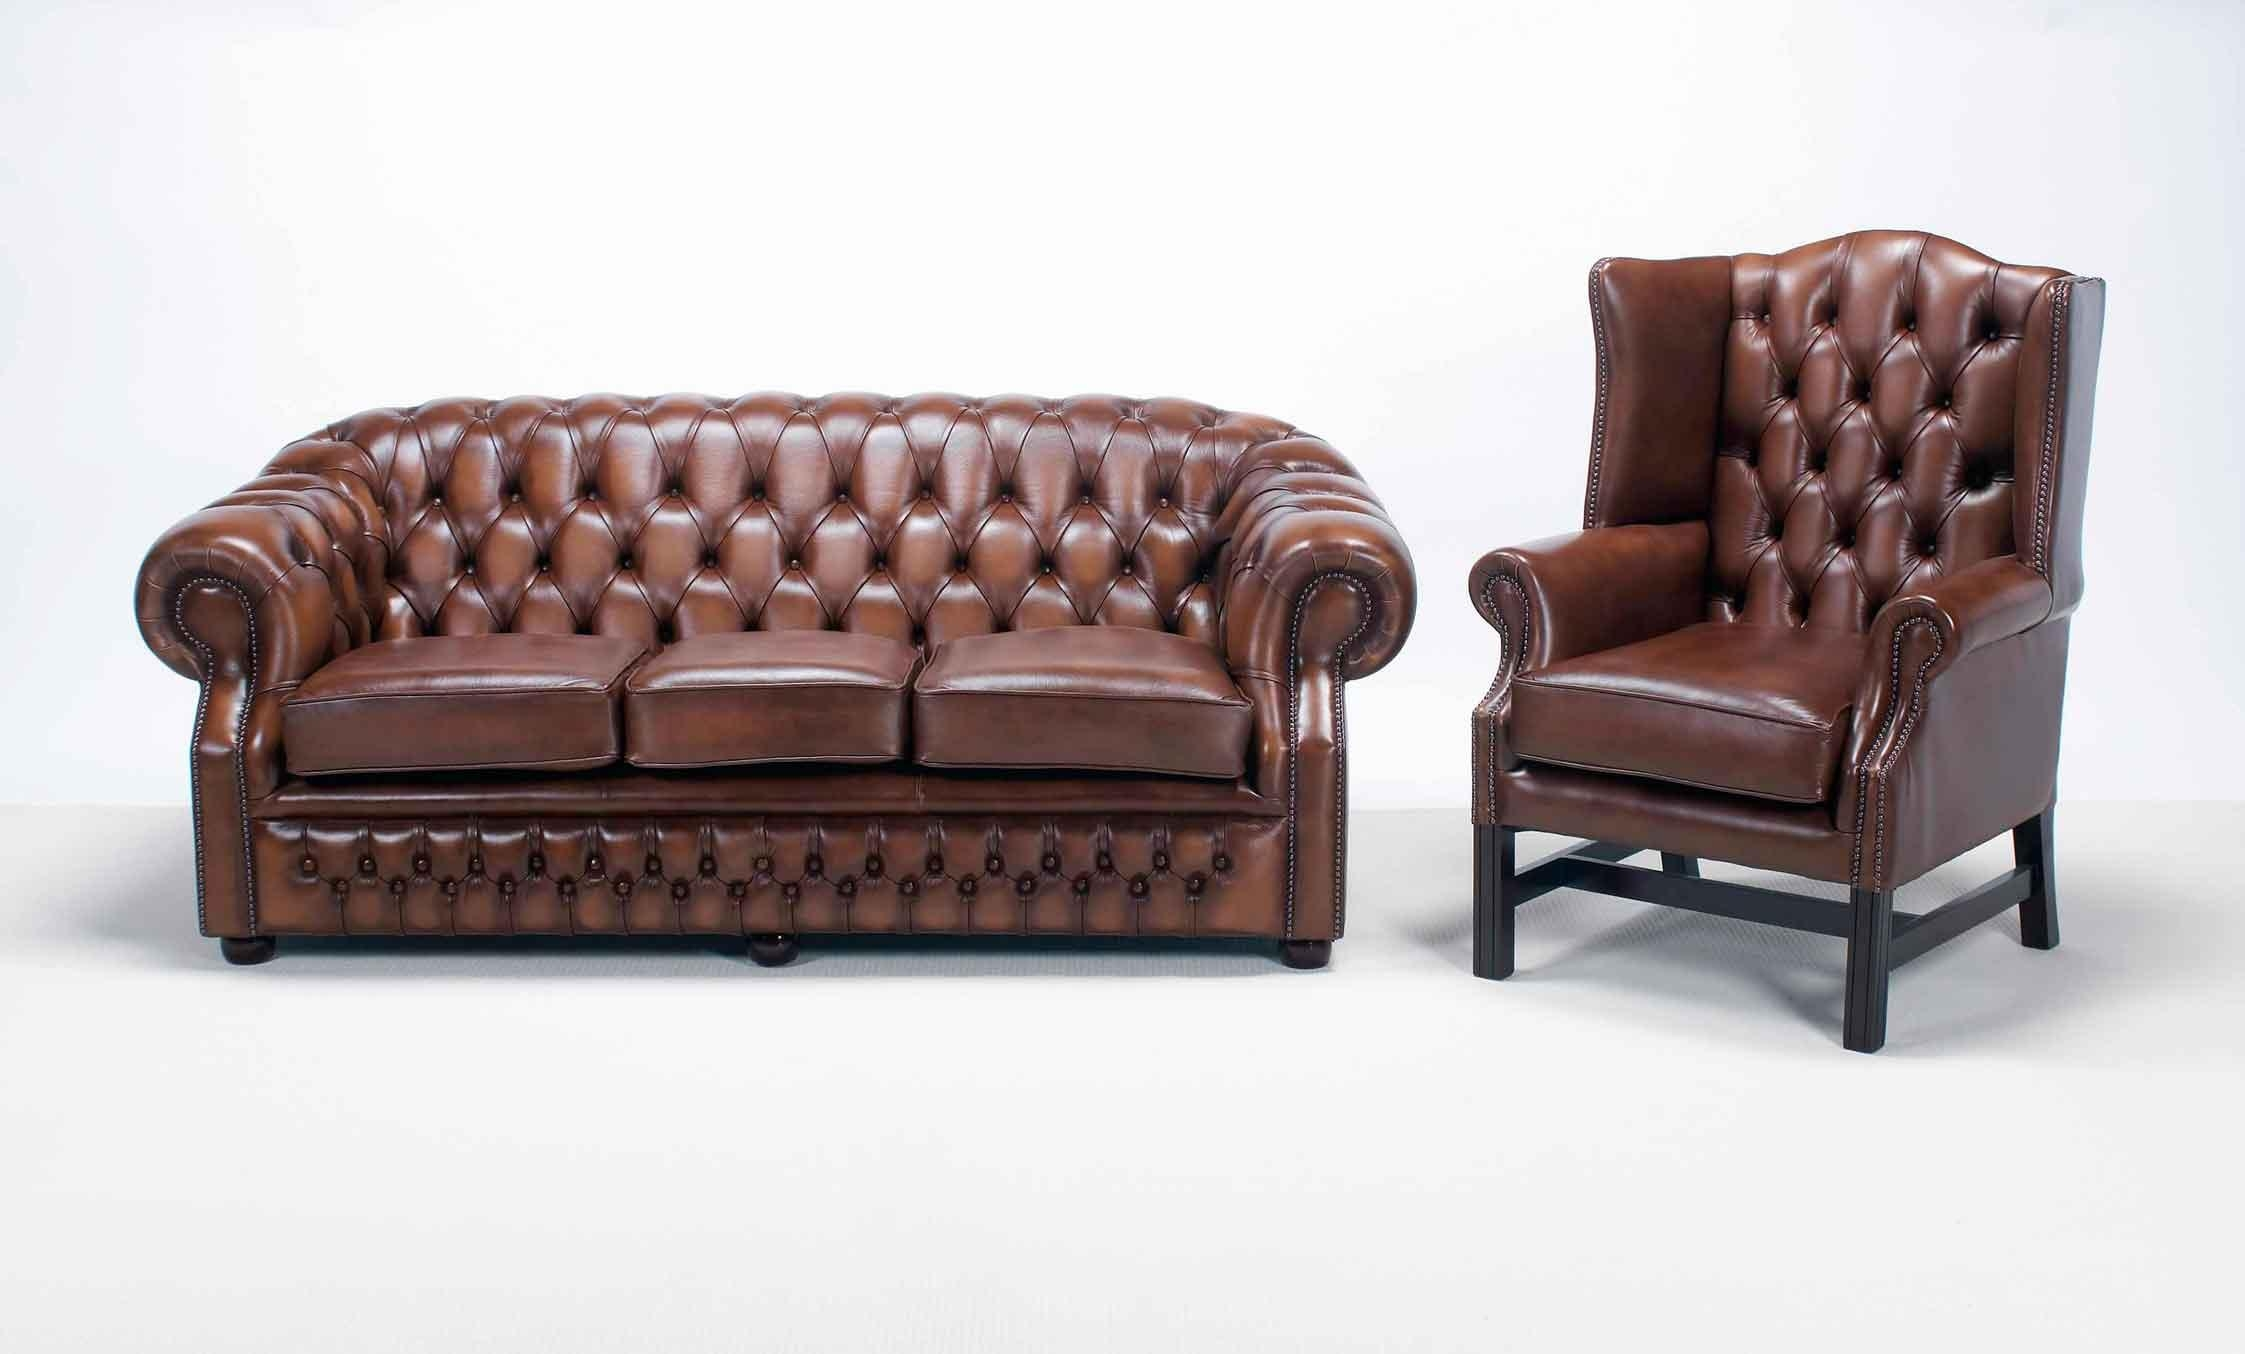 chesterfield sofa and chairs chesterfield sofas and chairs. Black Bedroom Furniture Sets. Home Design Ideas